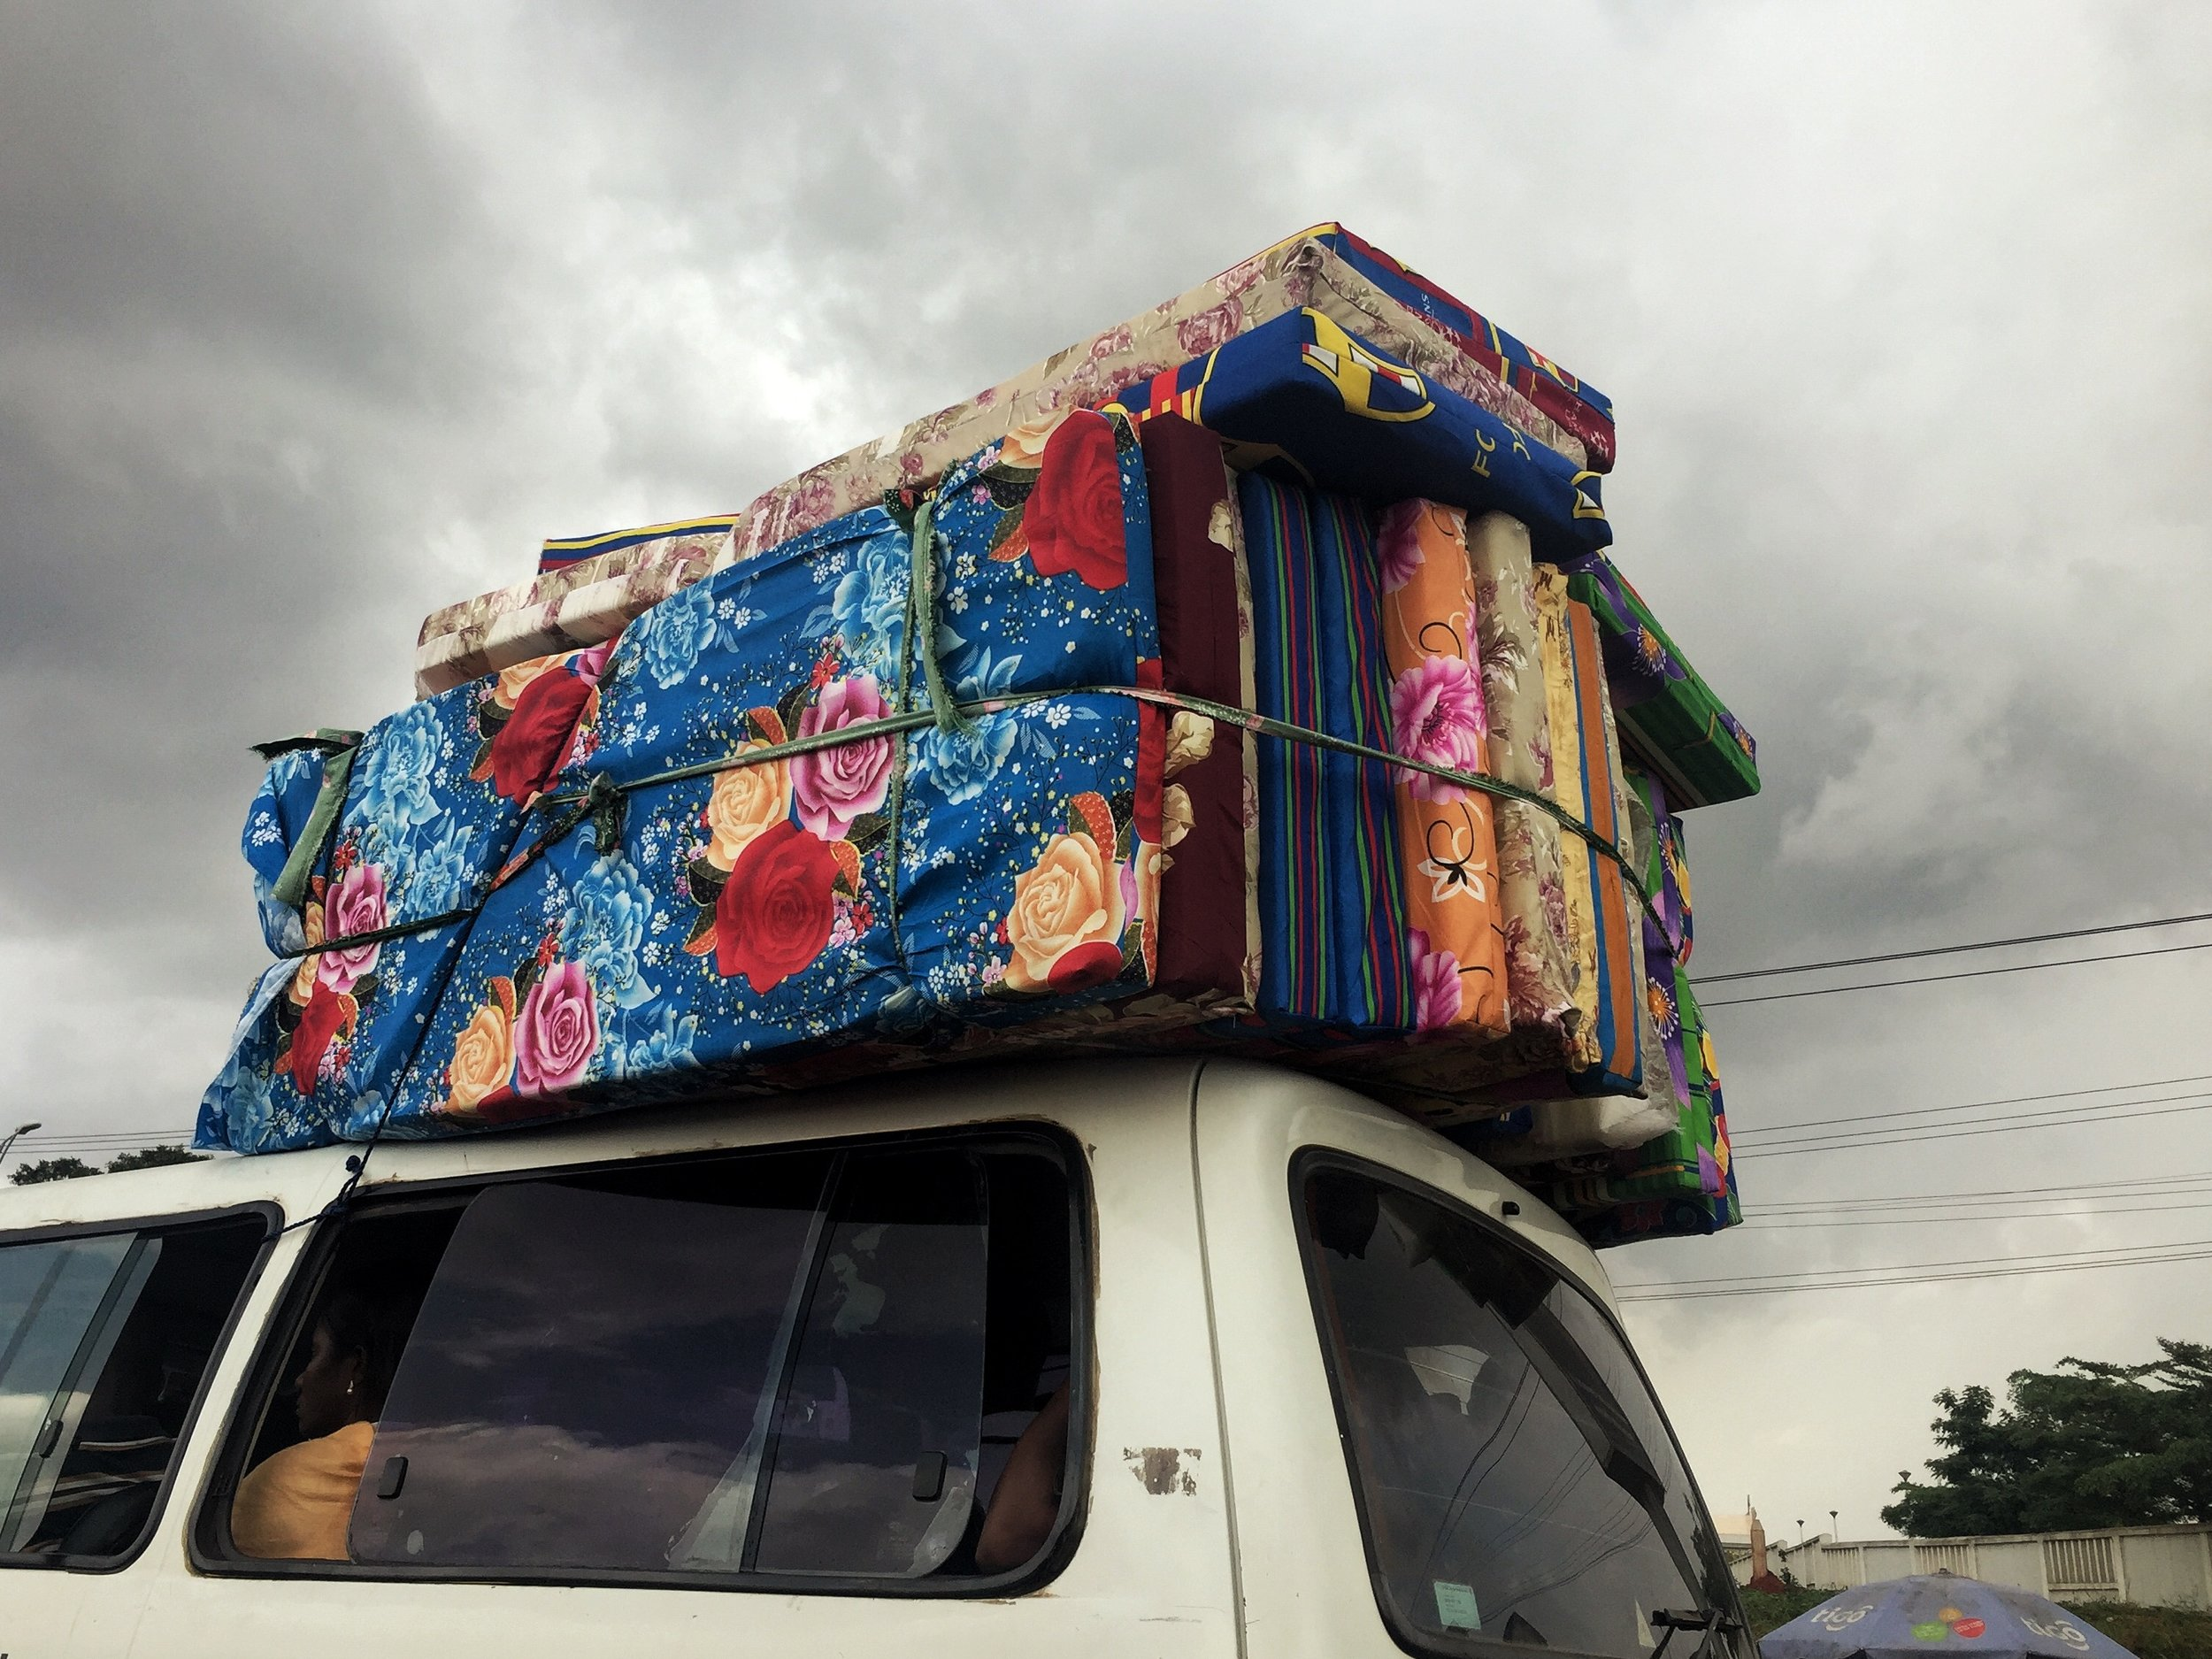 Children's mattresses tied to the top of a van during rush hour.